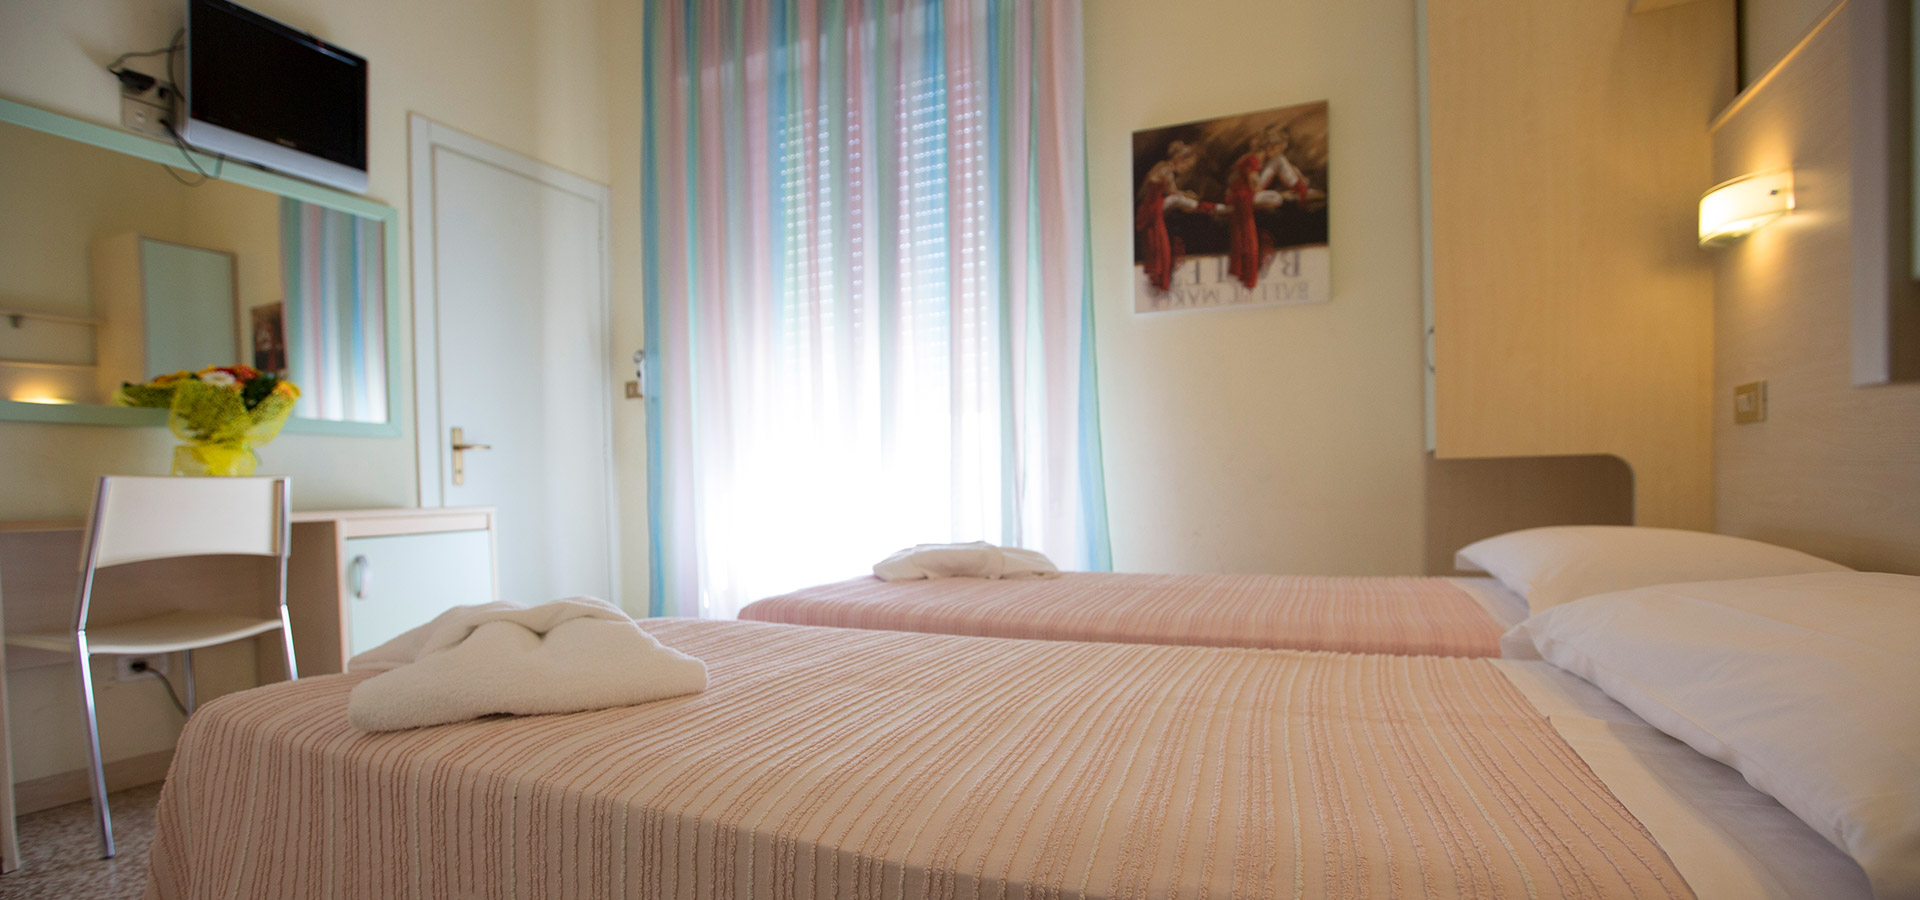 Camere-pink